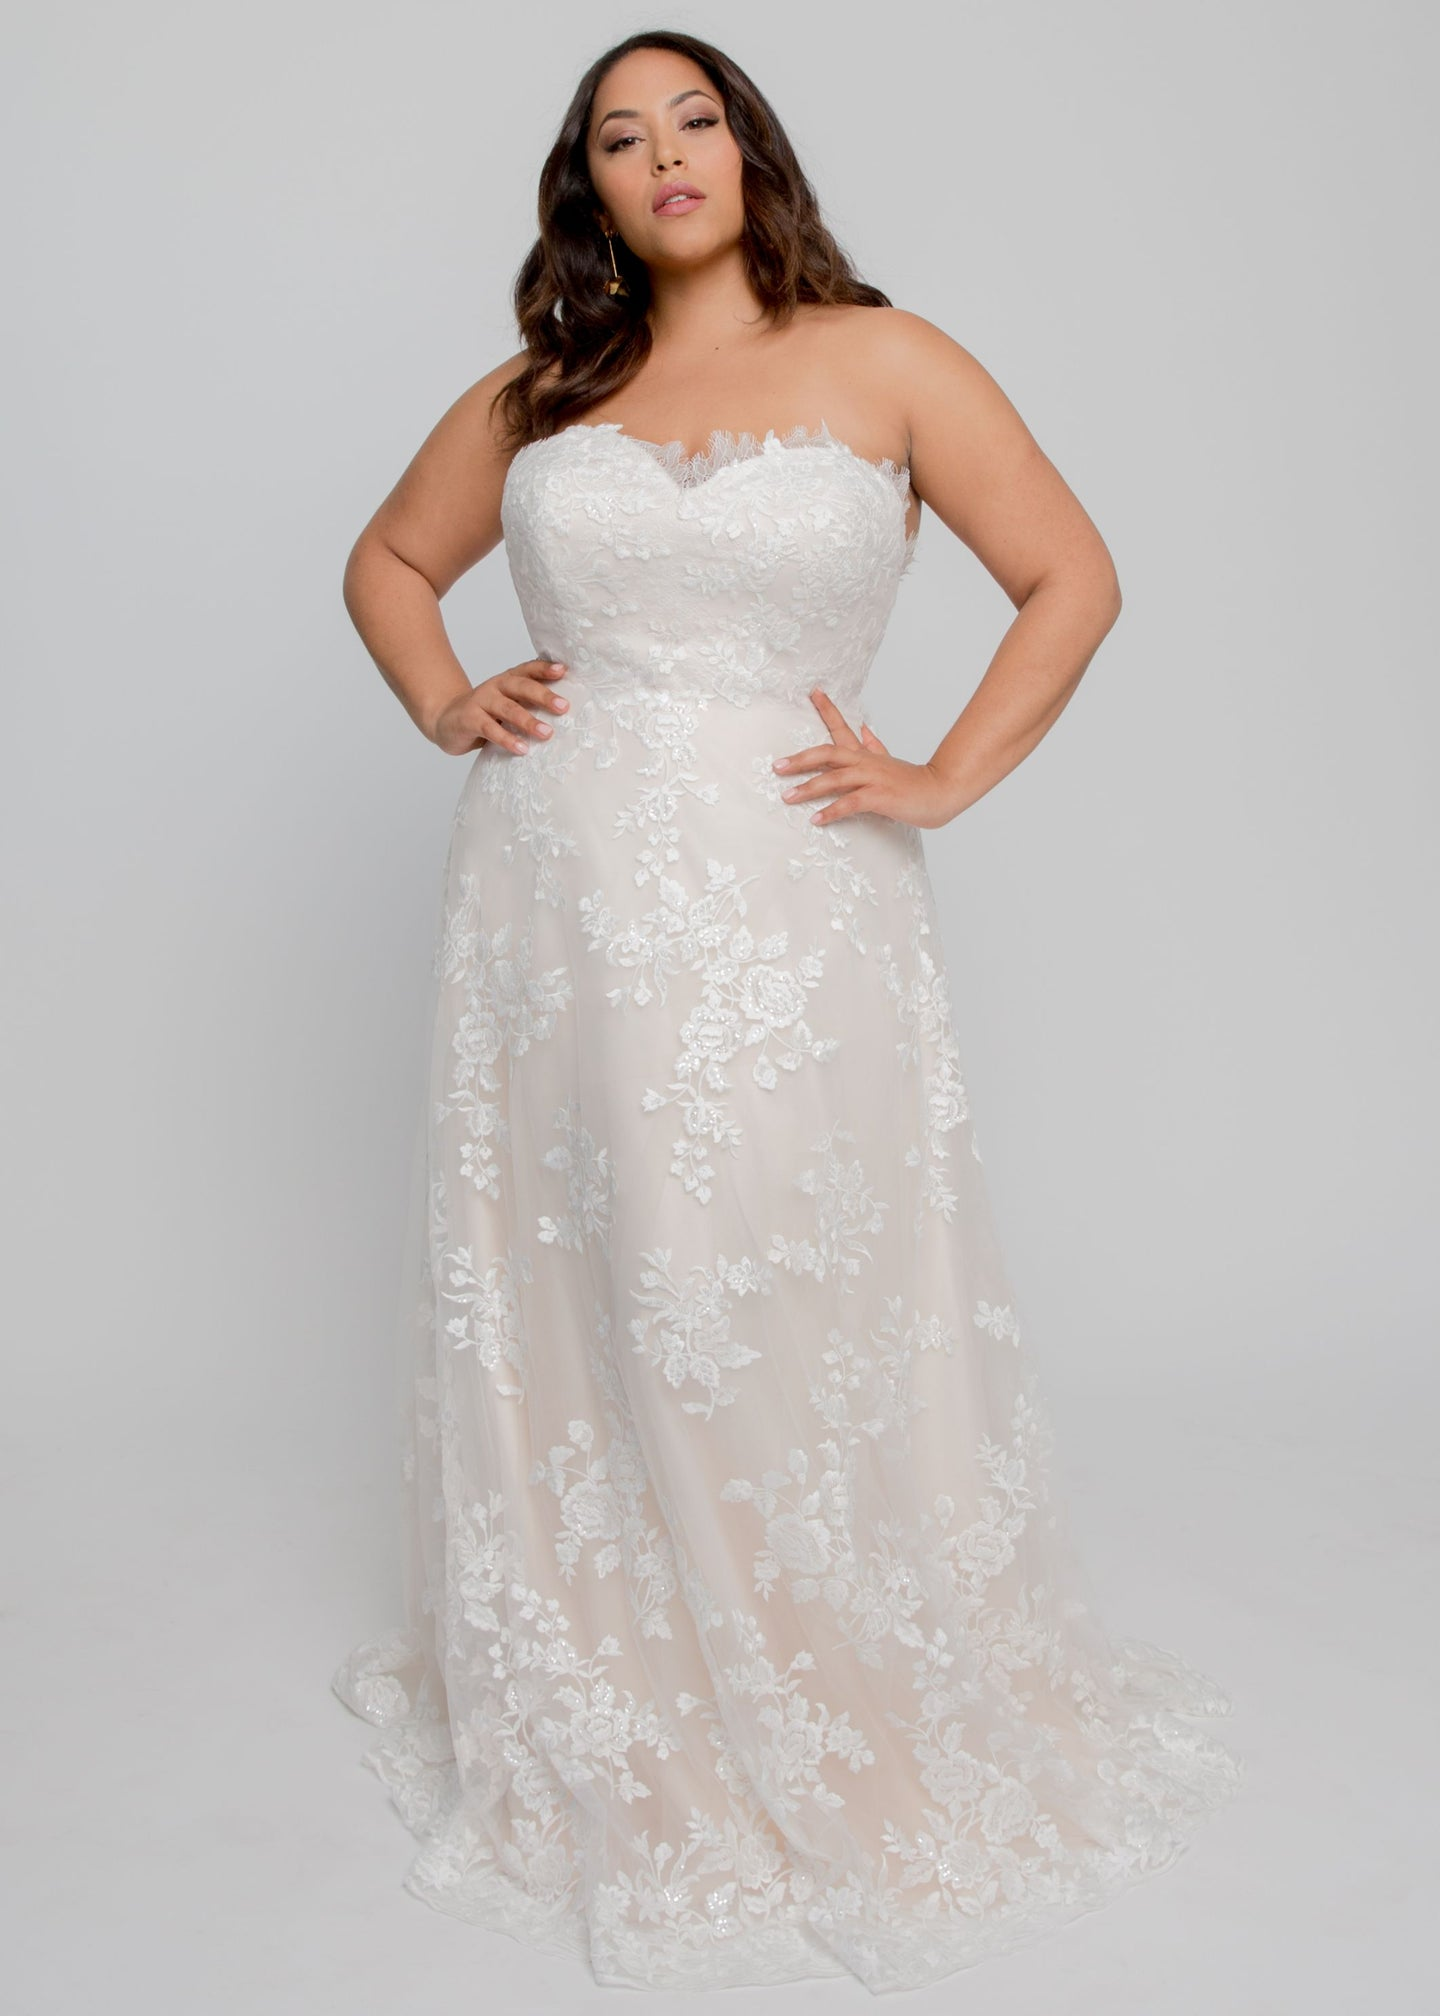 Gorgeous bridal gowns for all body shapes: plus size, curvy, or petite brides. Try on our wedding dresses at home. Size 0-30. Comfortable. Convenient. Fun. Lace or satin. Mermaid or A-line. The Scarlett gown features enchanting lace with a sweetheart neckline and flattering A line skirt. This lace is soft to the touch and features lovely roses covering the dress from neckline to hem.